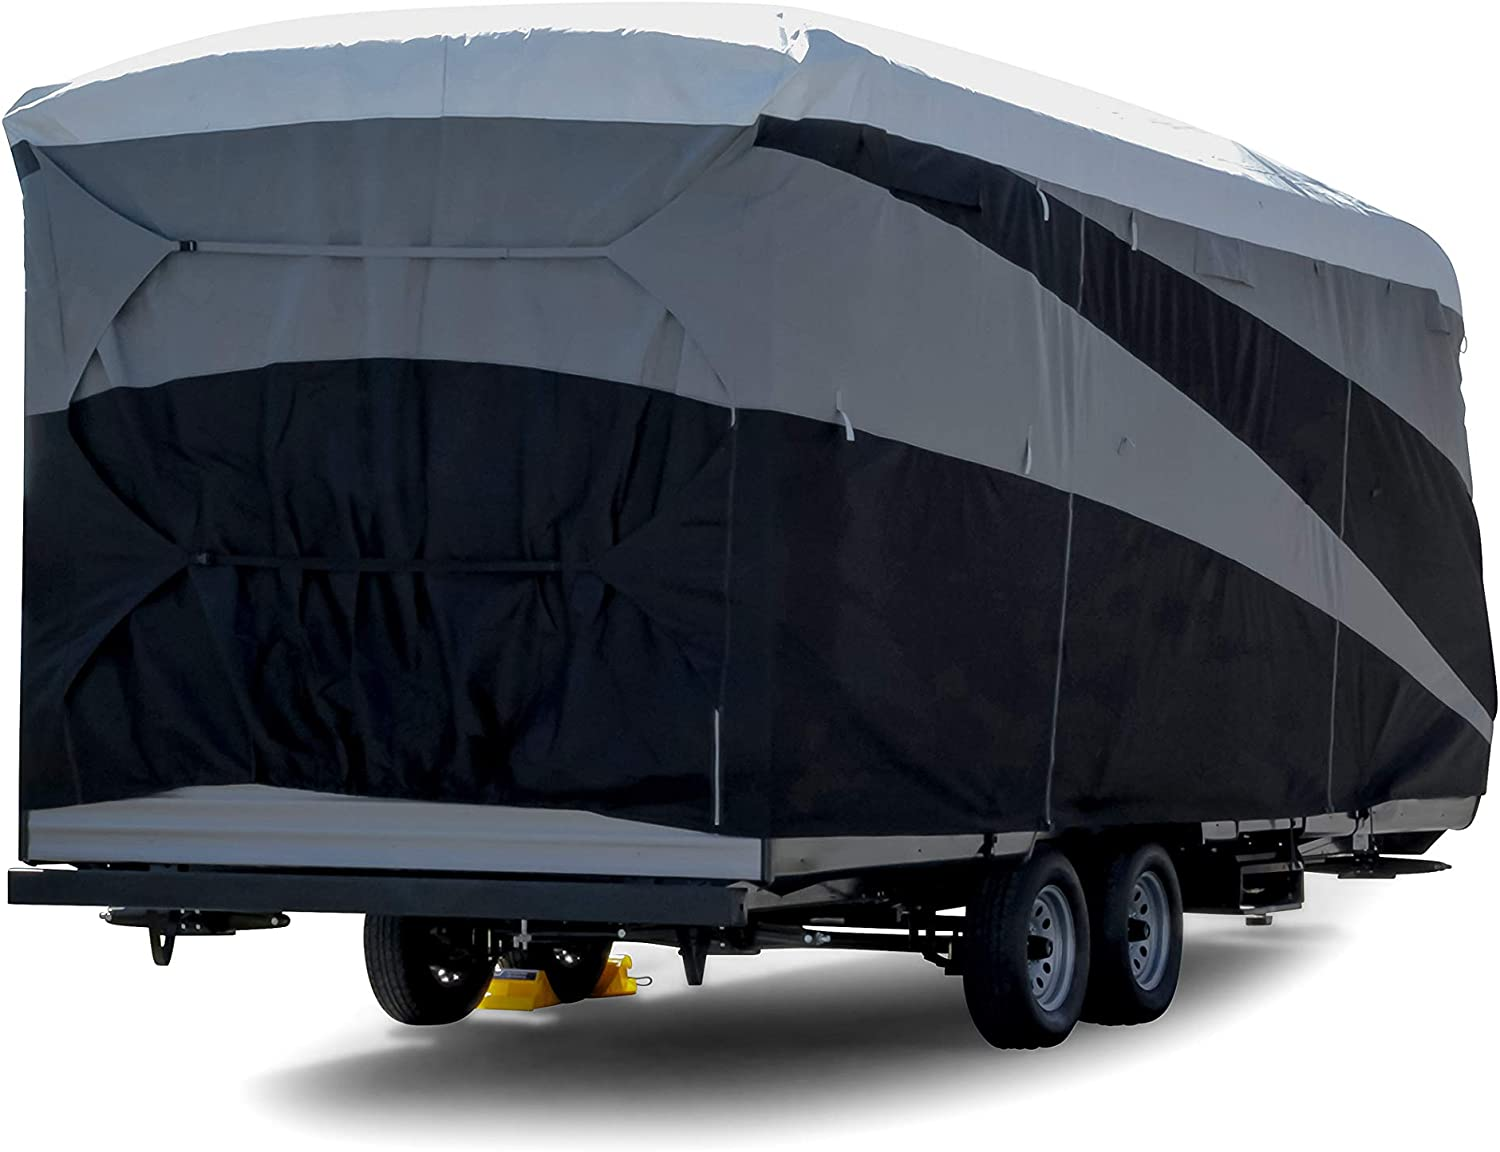 Camco ULTRAGuard Supreme RV Cover-Extremely Durable Design Fits Travel Trailers 18-20 56124 Weatherproof with UV Protection and Dupont Tyvek Top